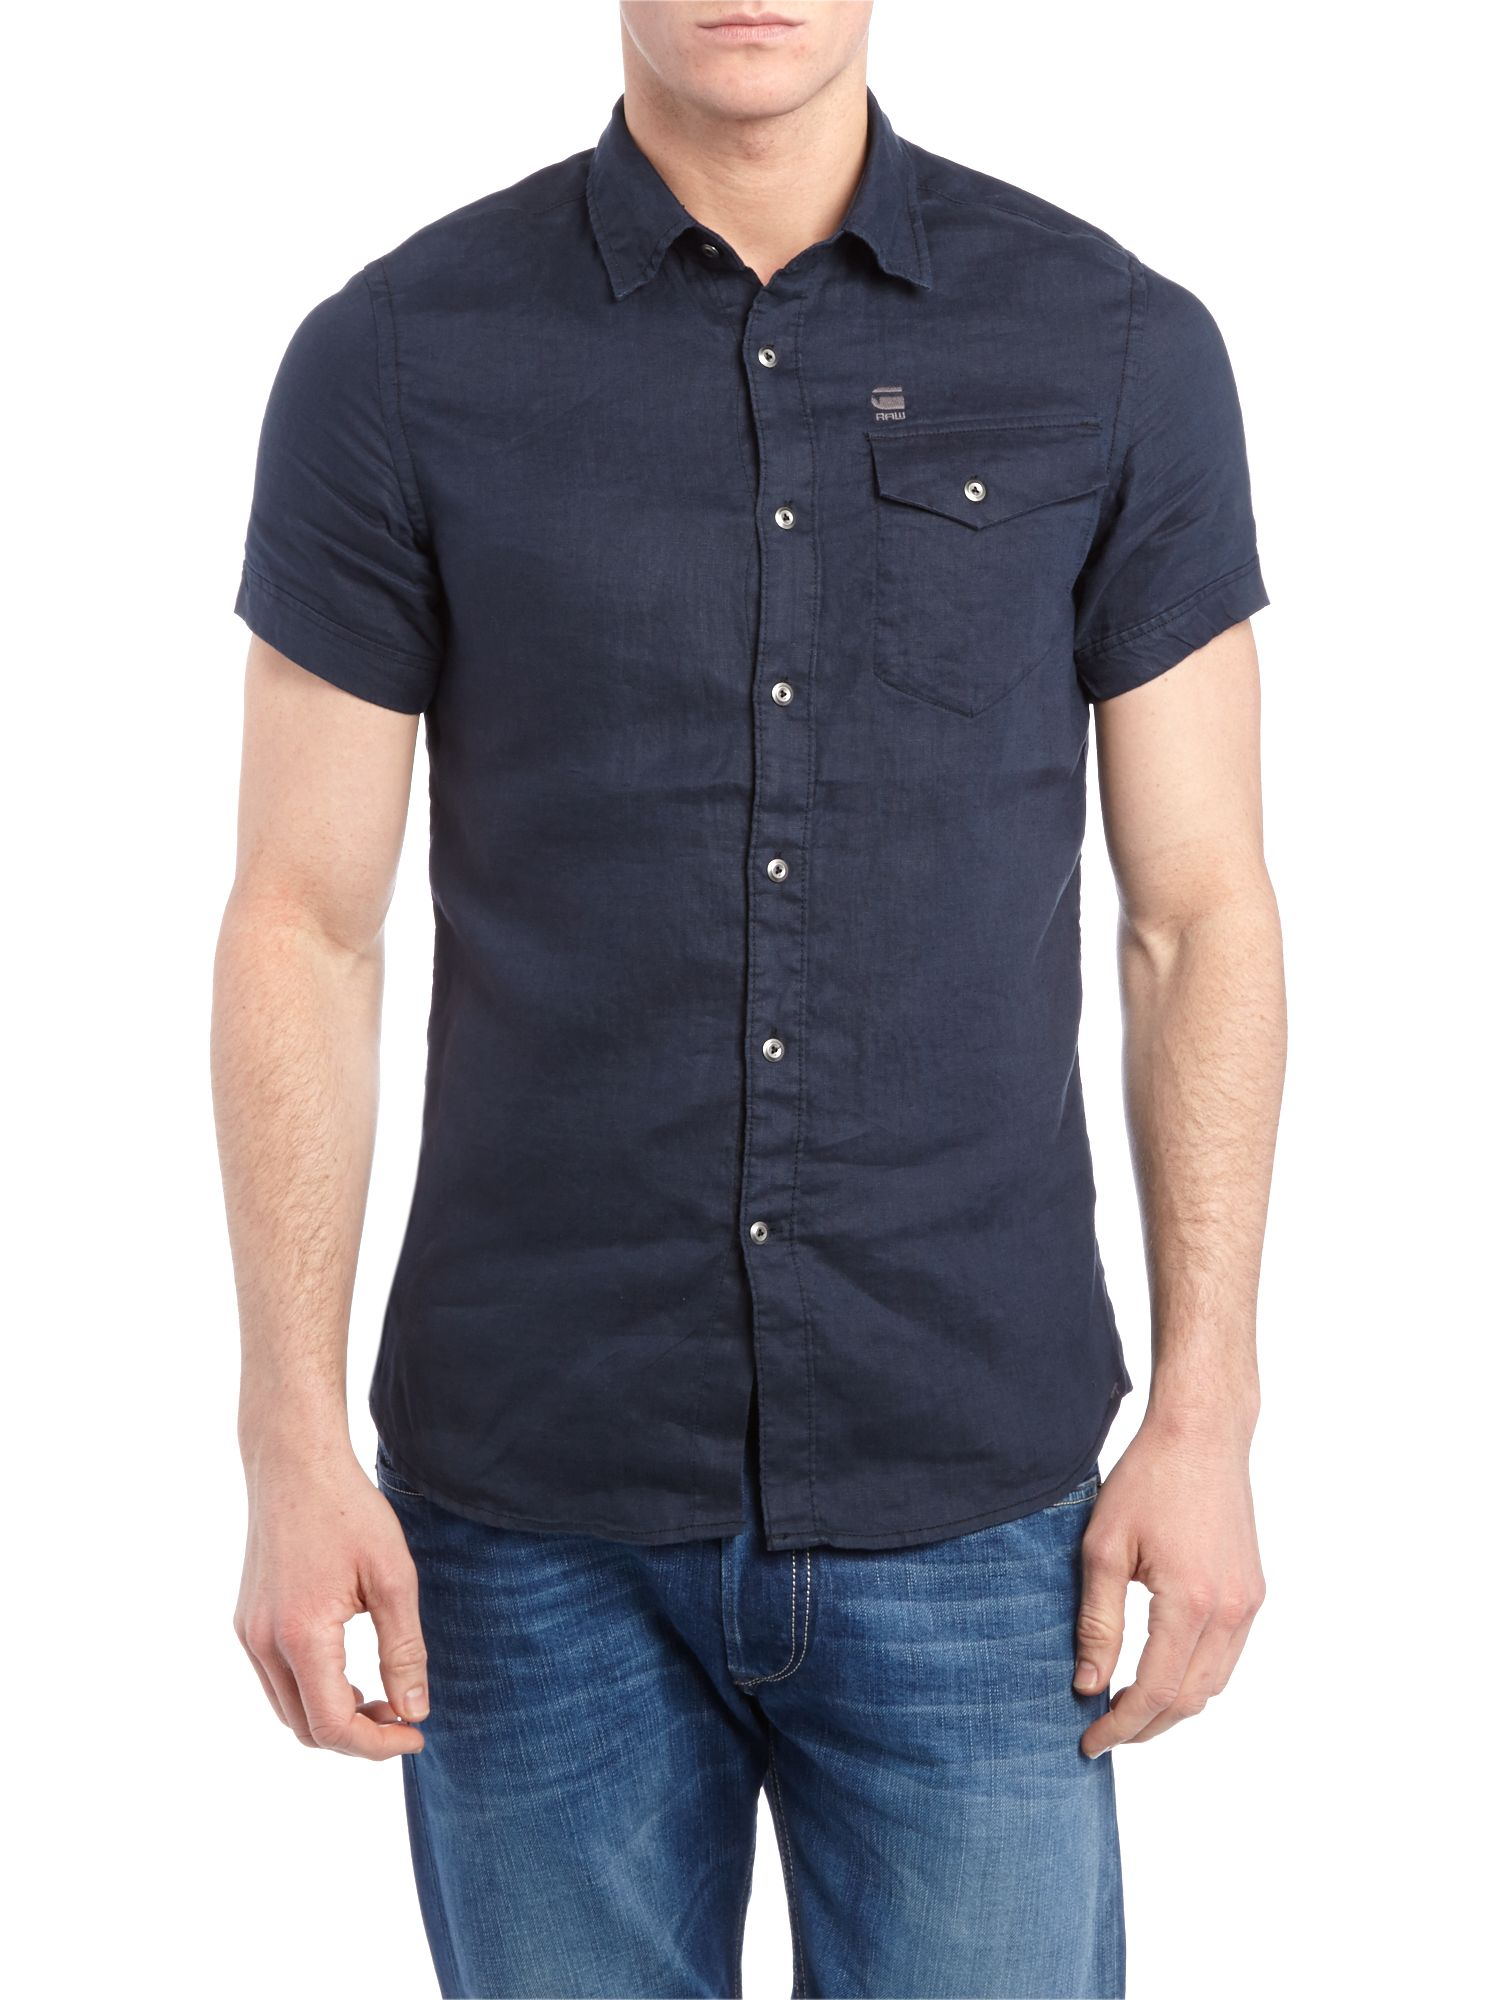 G star raw short sleeve two pocket shirt in blue for men for Mens two pocket short sleeve shirts